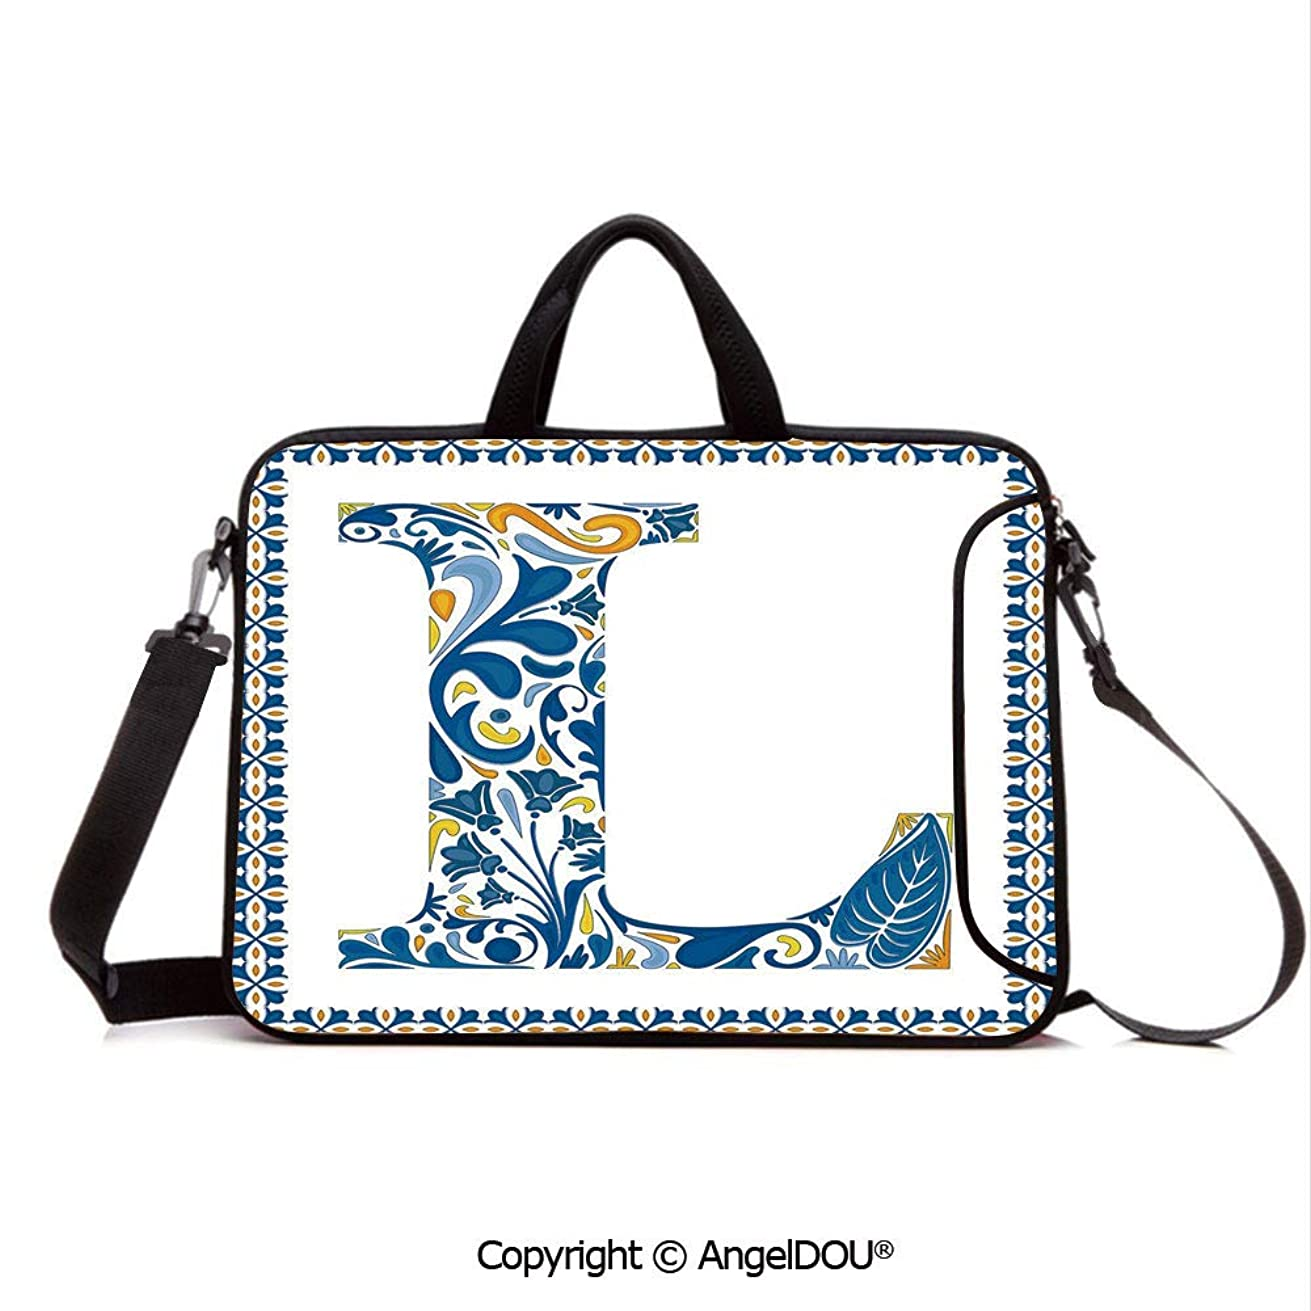 AngelDOU Laptop Shoulder Bag Waterproof Neoprene Computer Case Capital L in Traditional Portuguese Art Abstract Patterned Font Design Decorativ with Handle Adjustable Shoulder Strap and External Sid